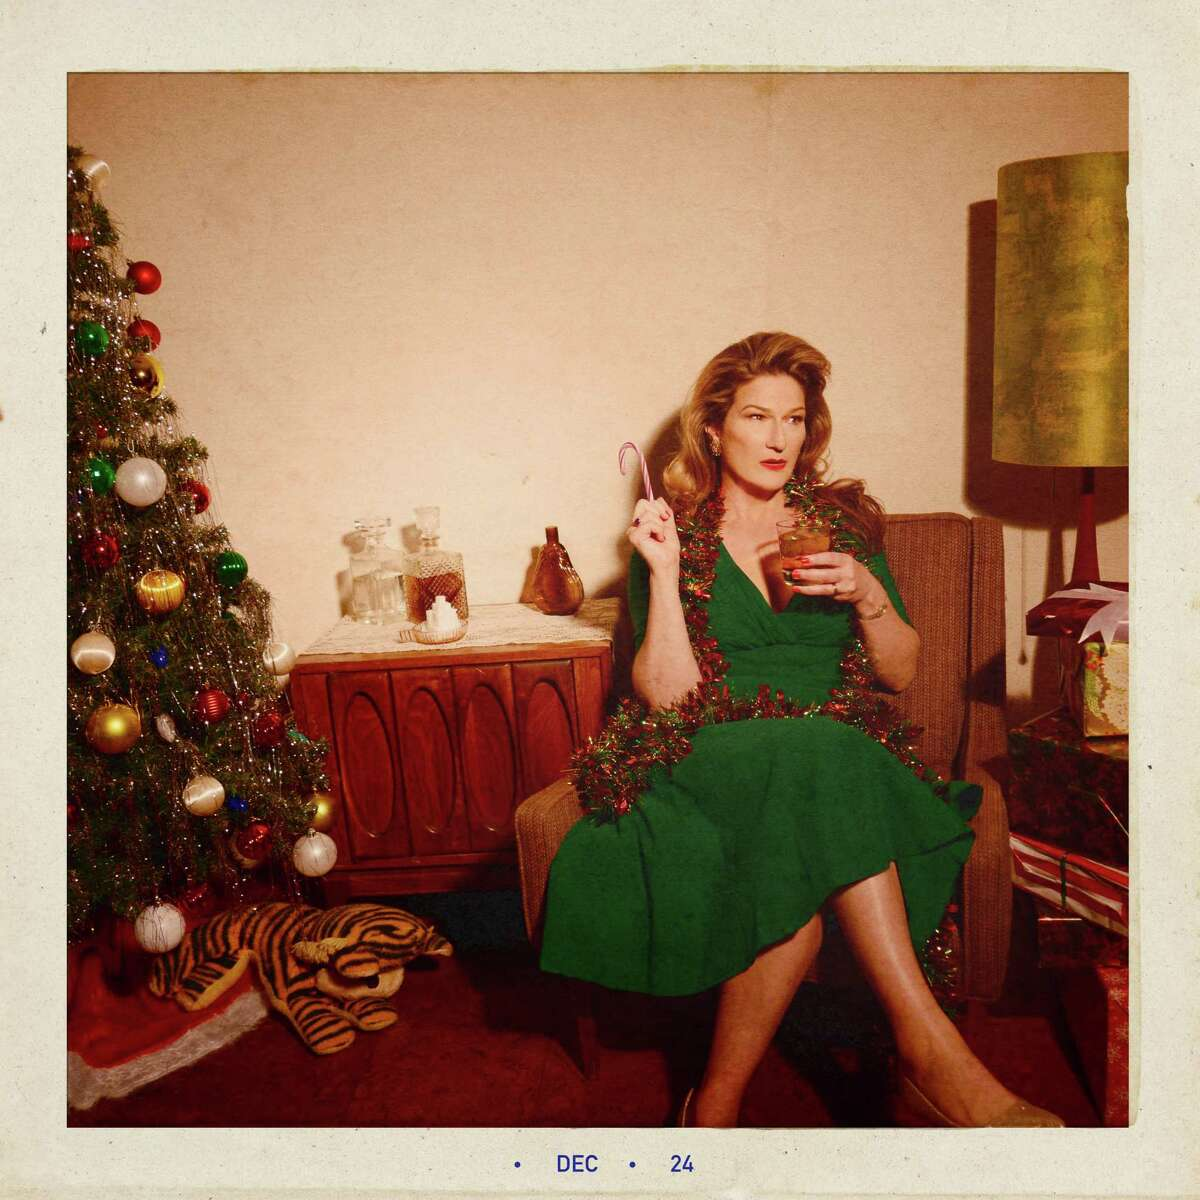 Ana Gasteyer: Sugar and Booze is on Dec. 18 at 8 p.m. at the Ridgefield Playhouse, 80 East Ridge Road, Ridgefield. Tickets are $45. For more information, visit ridgefieldplayhouse.org.